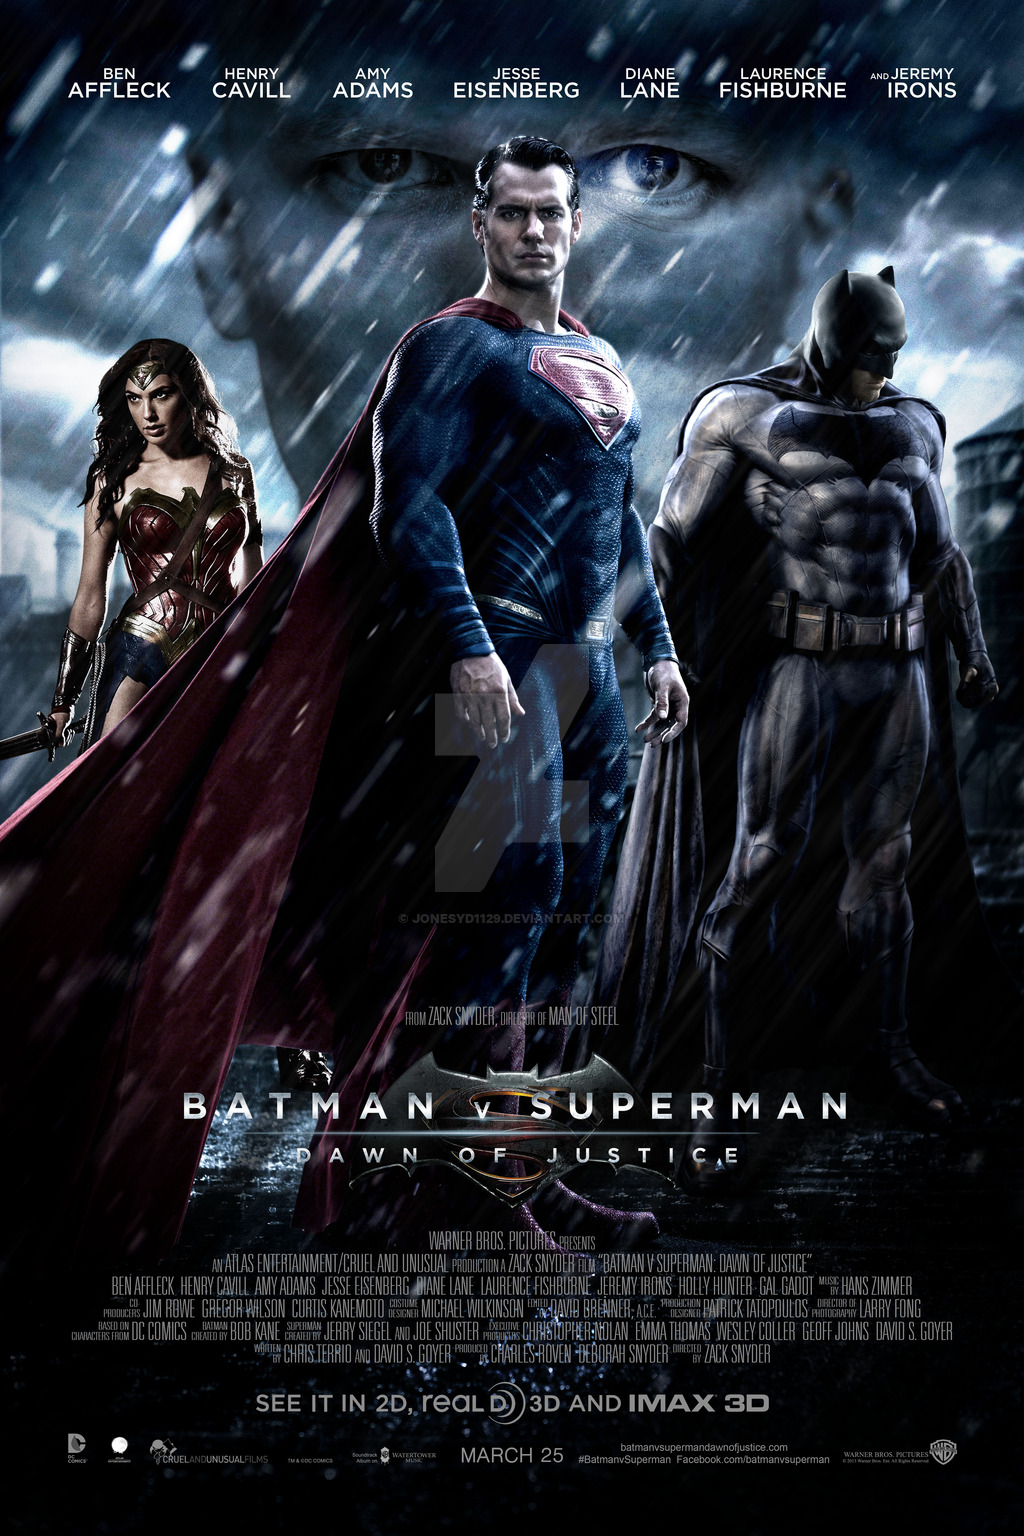 Batman vs Superman: Dawn of Justice (2016)